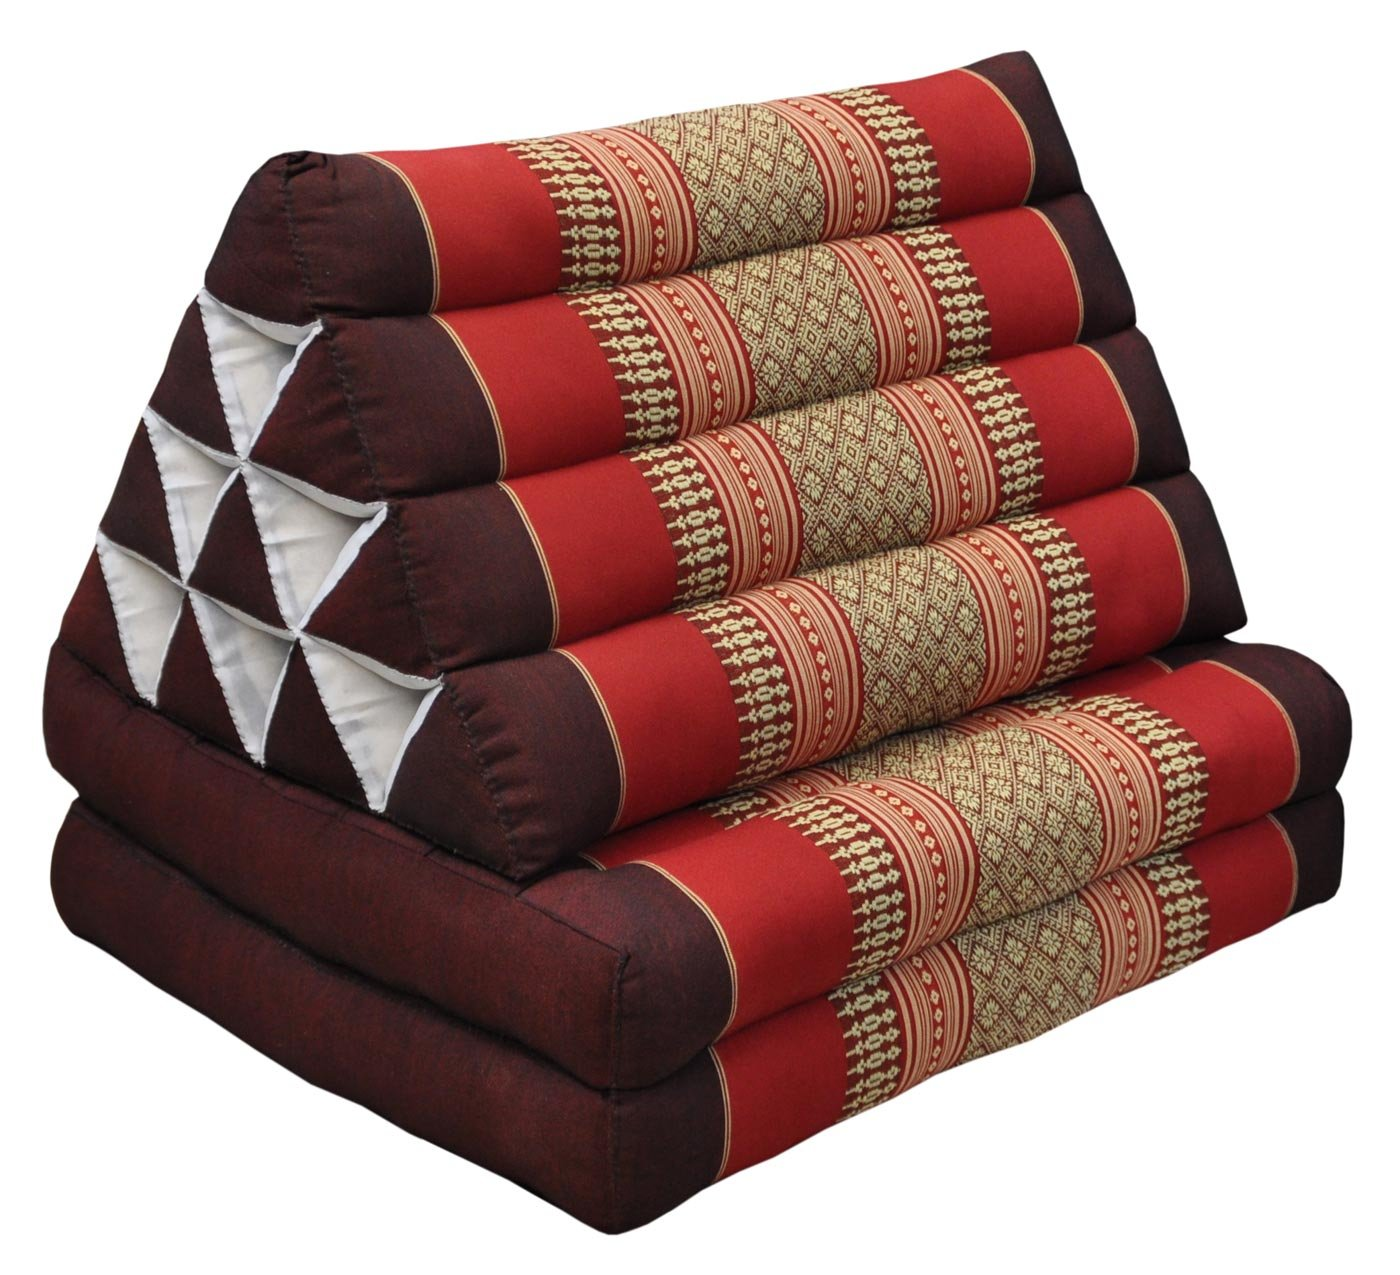 Thai triangular cushion with mattress 2 folds, burgundy/red, relaxation, beach, pool, meditation garden (82302) by Wilai GmbH